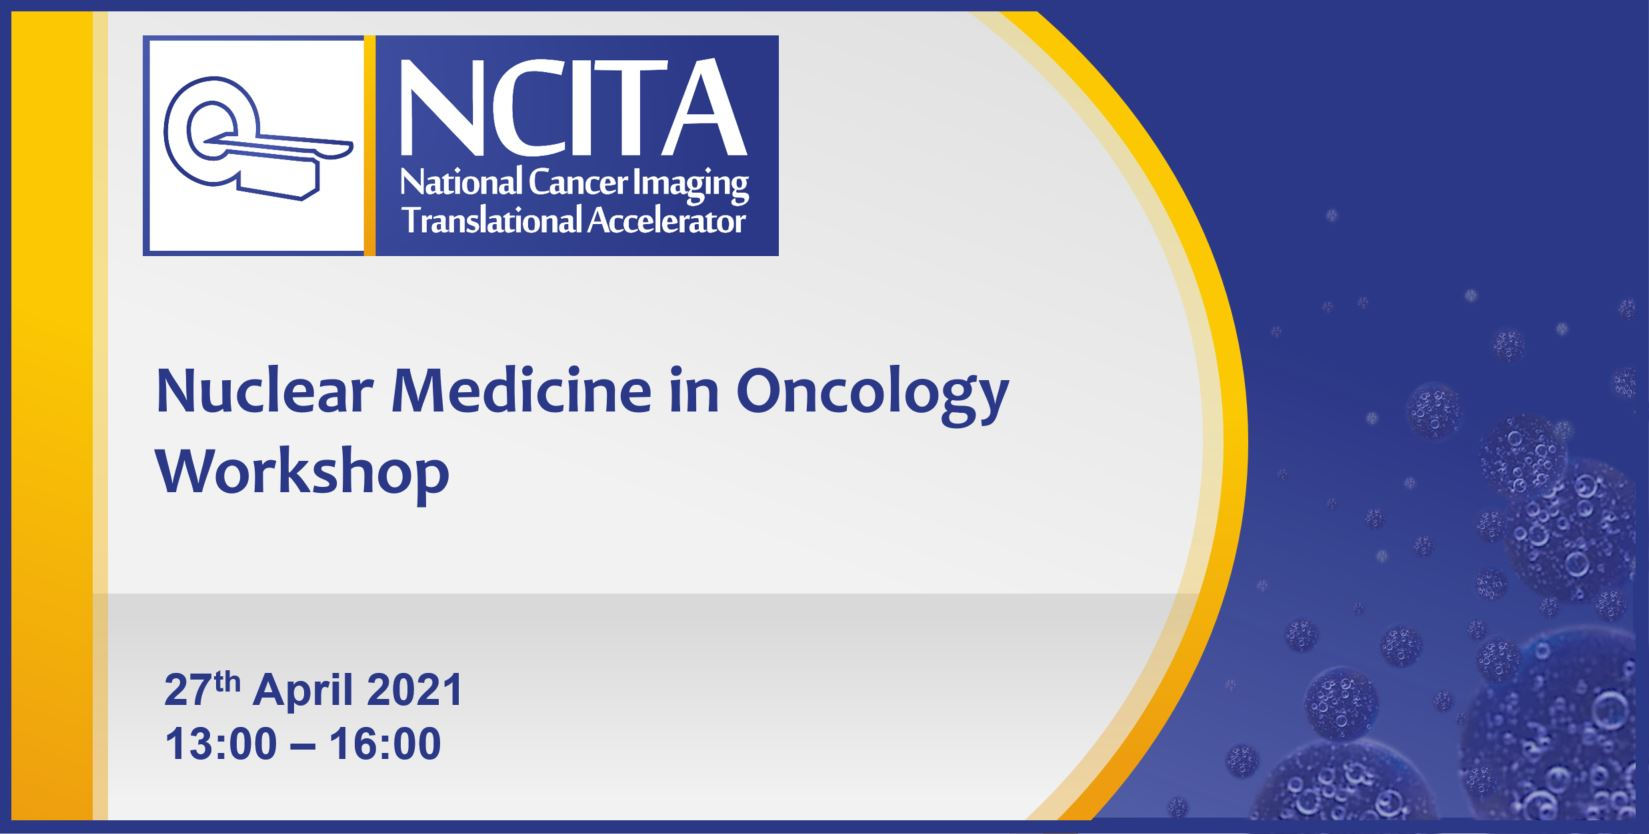 NCITA Nuclear Medicine in Oncology